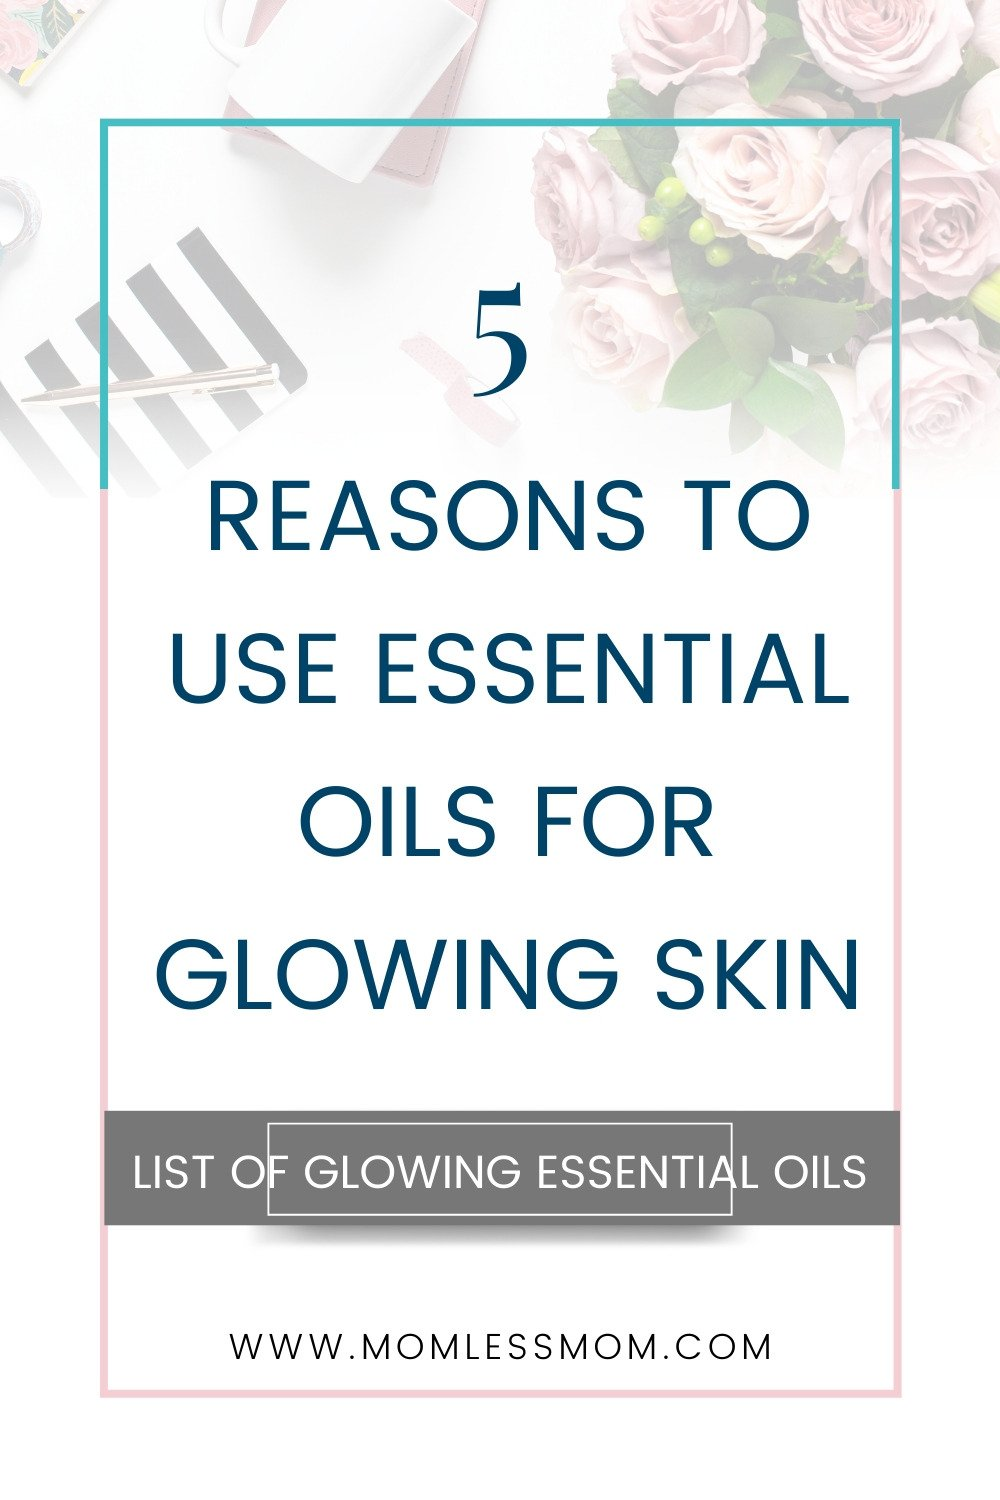 5 Reasons to Use Essential Oils for Glowing Skin